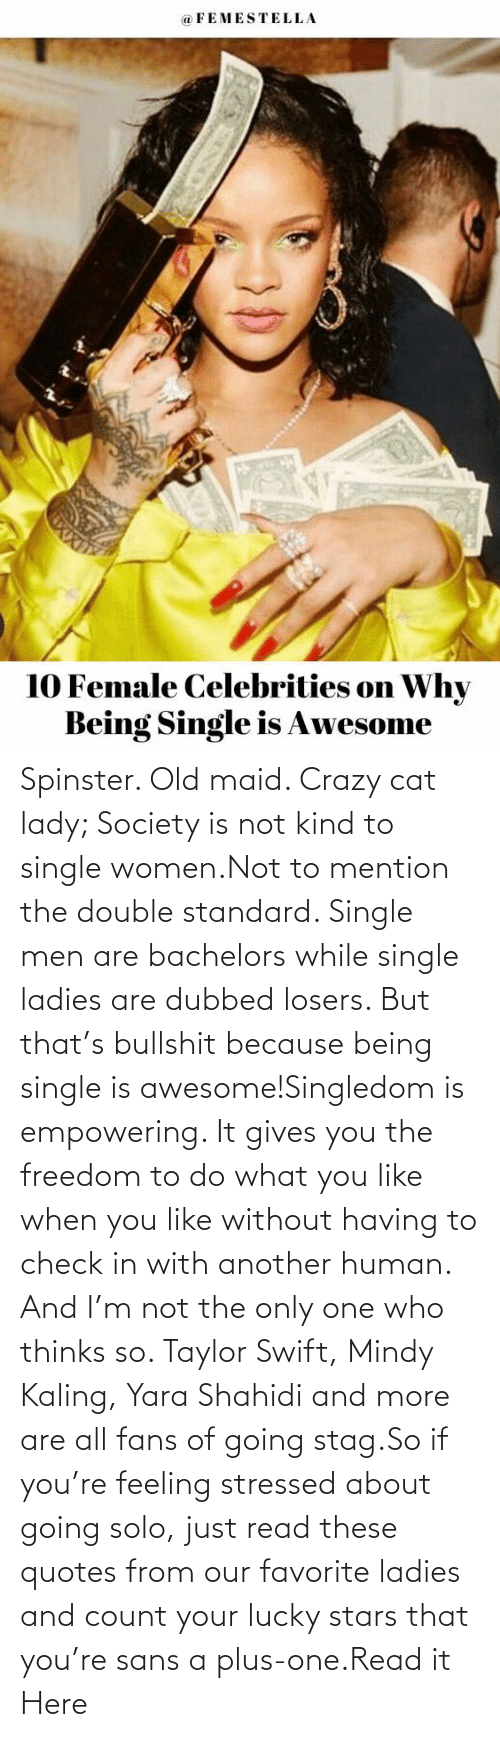 Empowering: Spinster. Old maid. Crazy cat lady; Society is not kind to single women.Not to mention the double standard. Single men are bachelors while single ladies are dubbed losers. But that's bullshit because being single is awesome!Singledom is empowering. It gives you the freedom to do what you like when you like without having to check in with another human. And I'm not the only one who thinks so. Taylor Swift, Mindy Kaling, Yara Shahidi and more are all fans of going stag.So if you're feeling stressed about going solo, just read these quotes from our favorite ladies and count your lucky stars that you're sans a plus-one.Read it Here